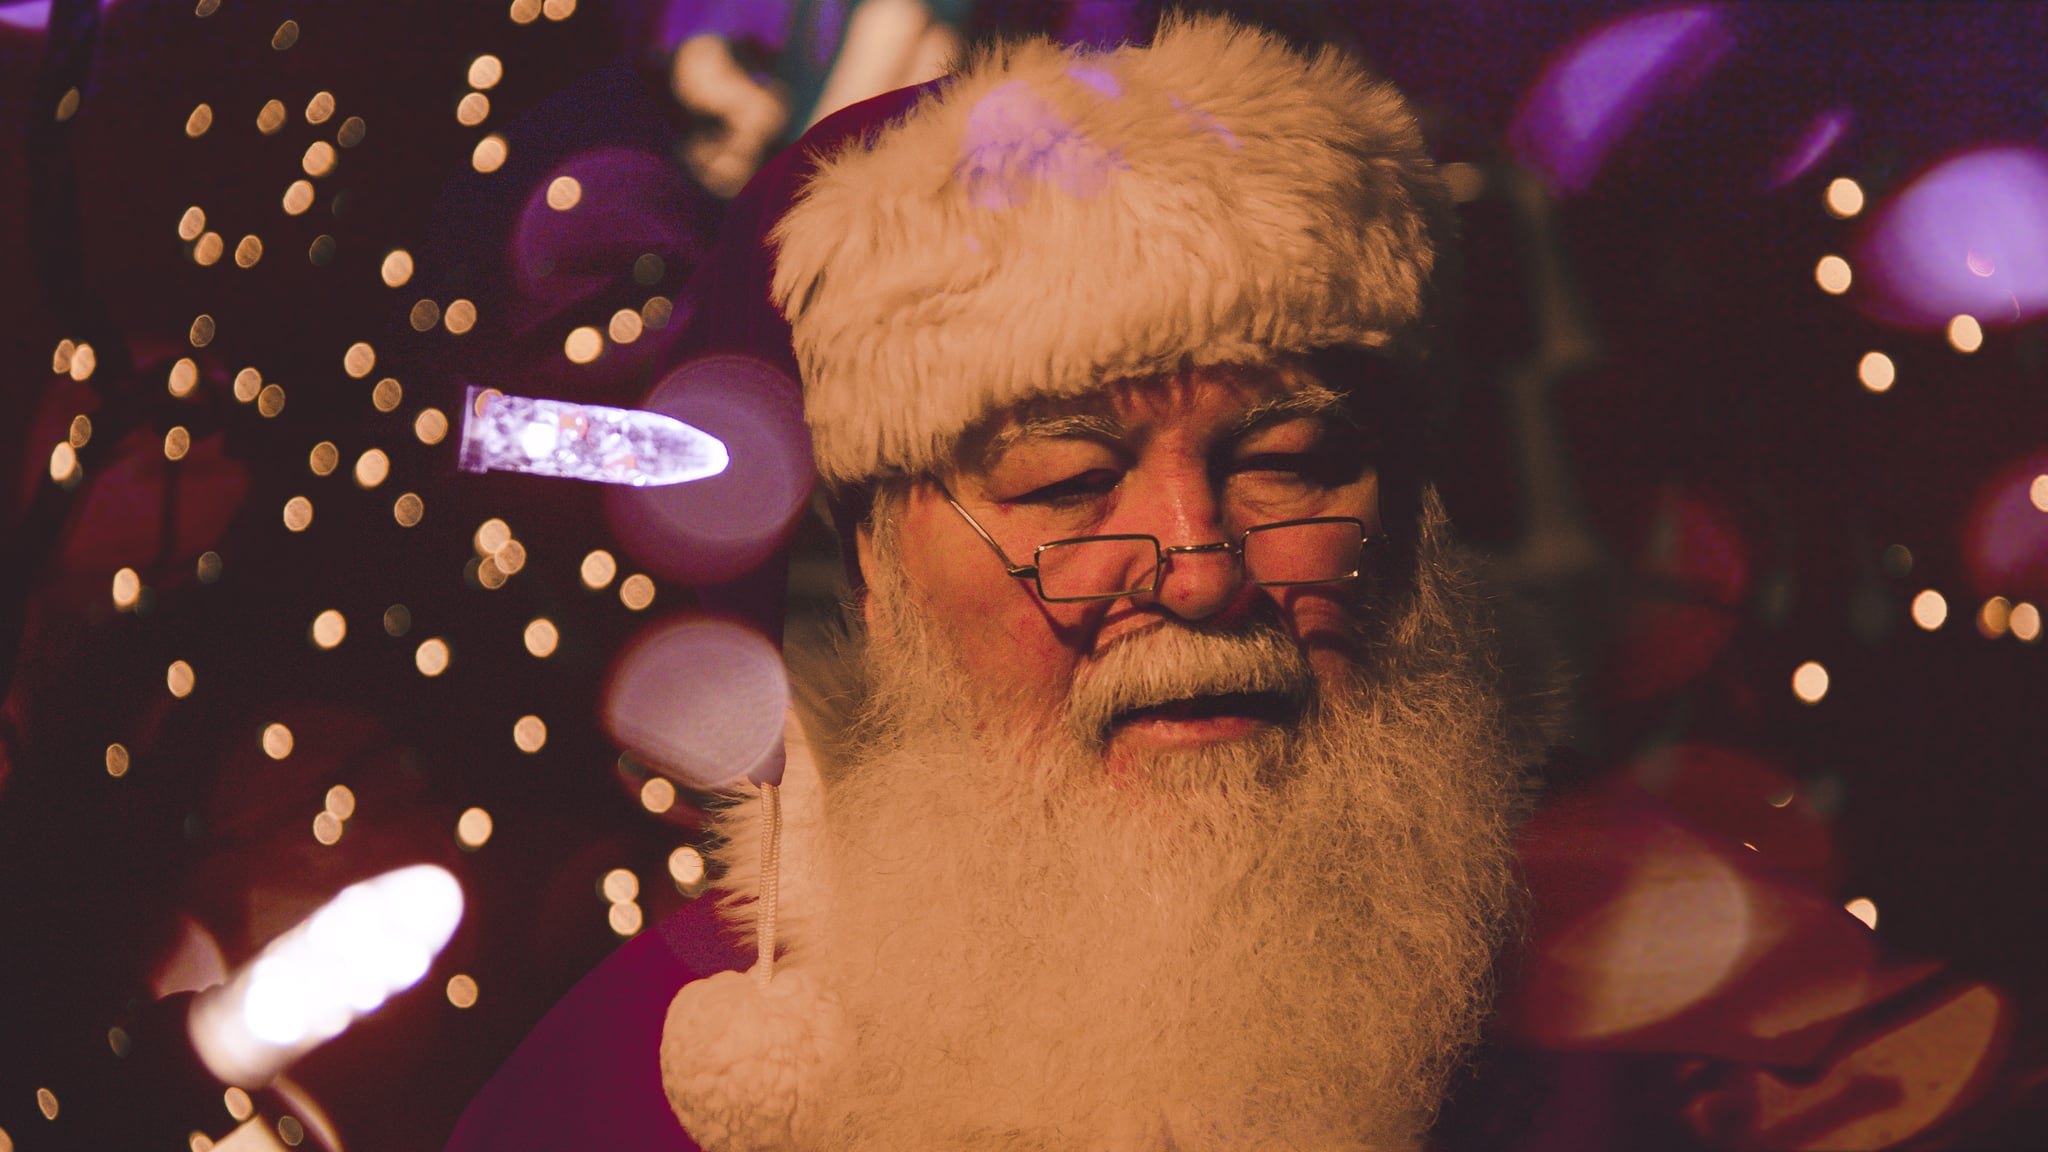 As Hard as It May Be, There Comes a Point Where a Child Has to Stop Believing in Santa